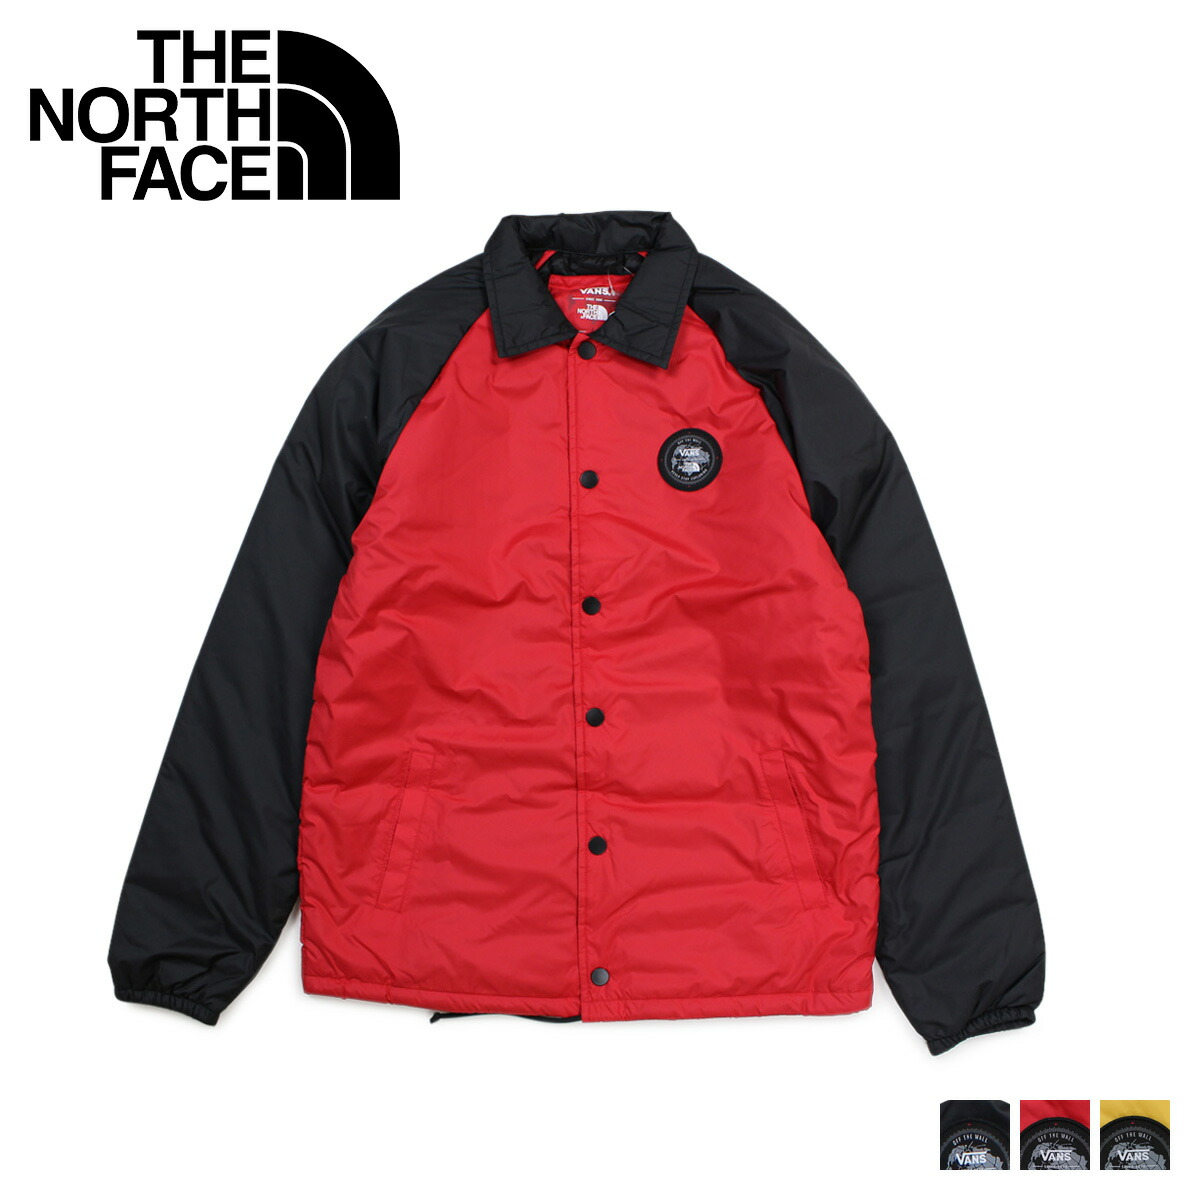 ALLSPORTS  THE NORTH FACE VANS TORREY MTE JACKET North Face vans ... dd484330a